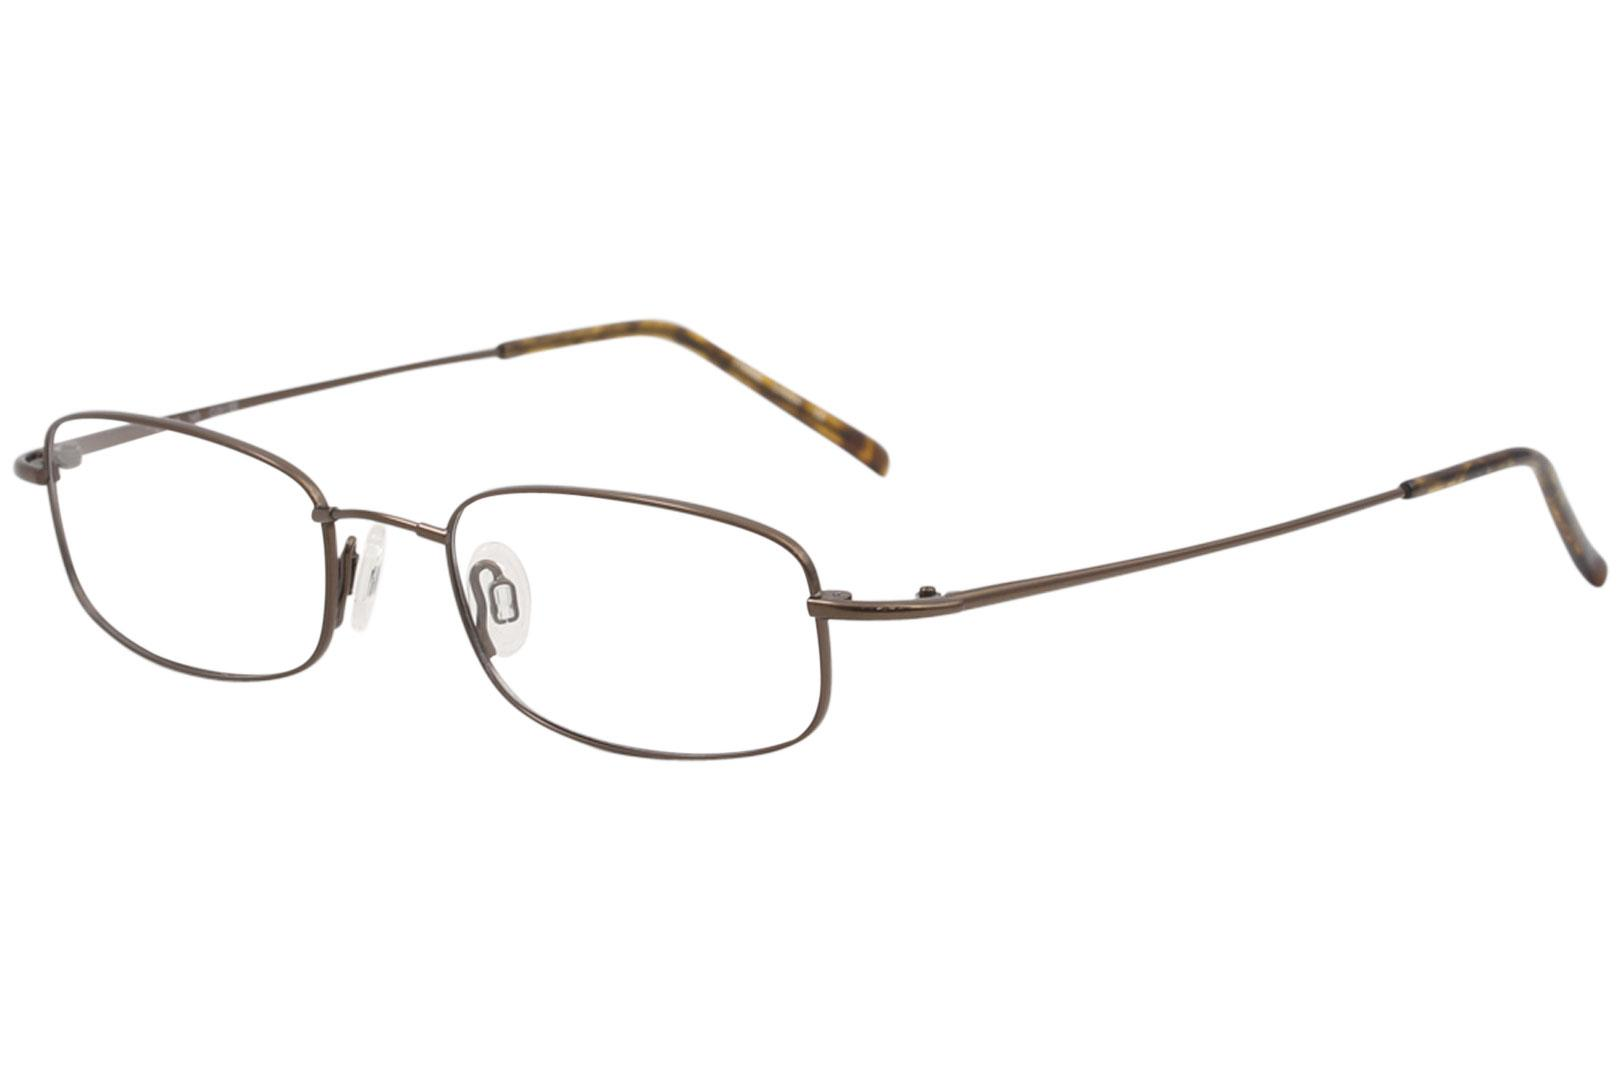 Image of Flexon Men's Eyeglasses 603 218 Coffee Full Rim Optical Frame 51mm - Coffee   218 - Lens 51 Bridge 19 Temple 145mm